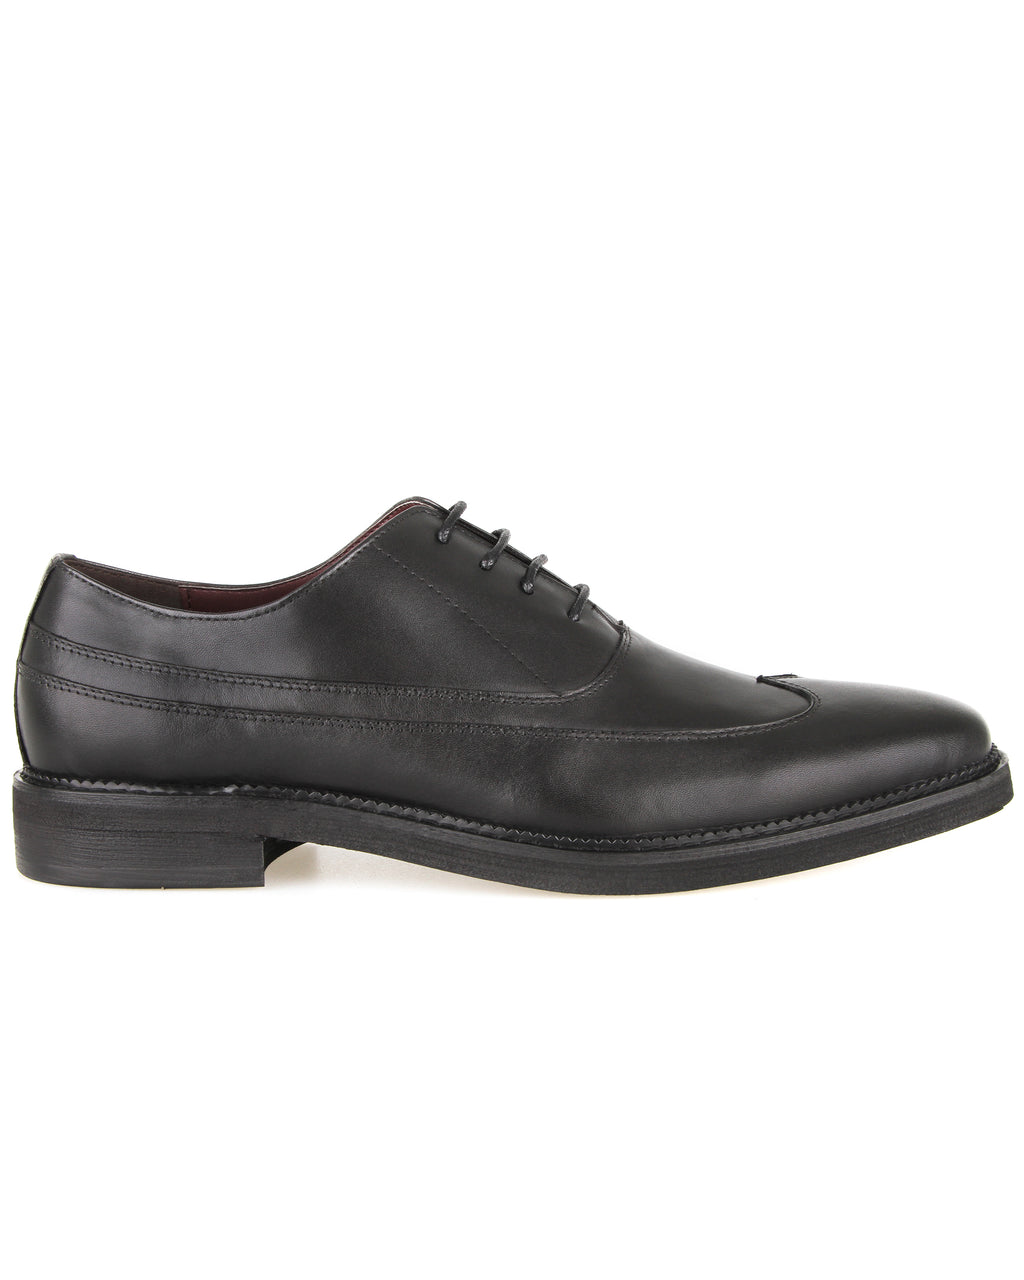 Tomaz F279 Formal Wingtip Oxford (Black)